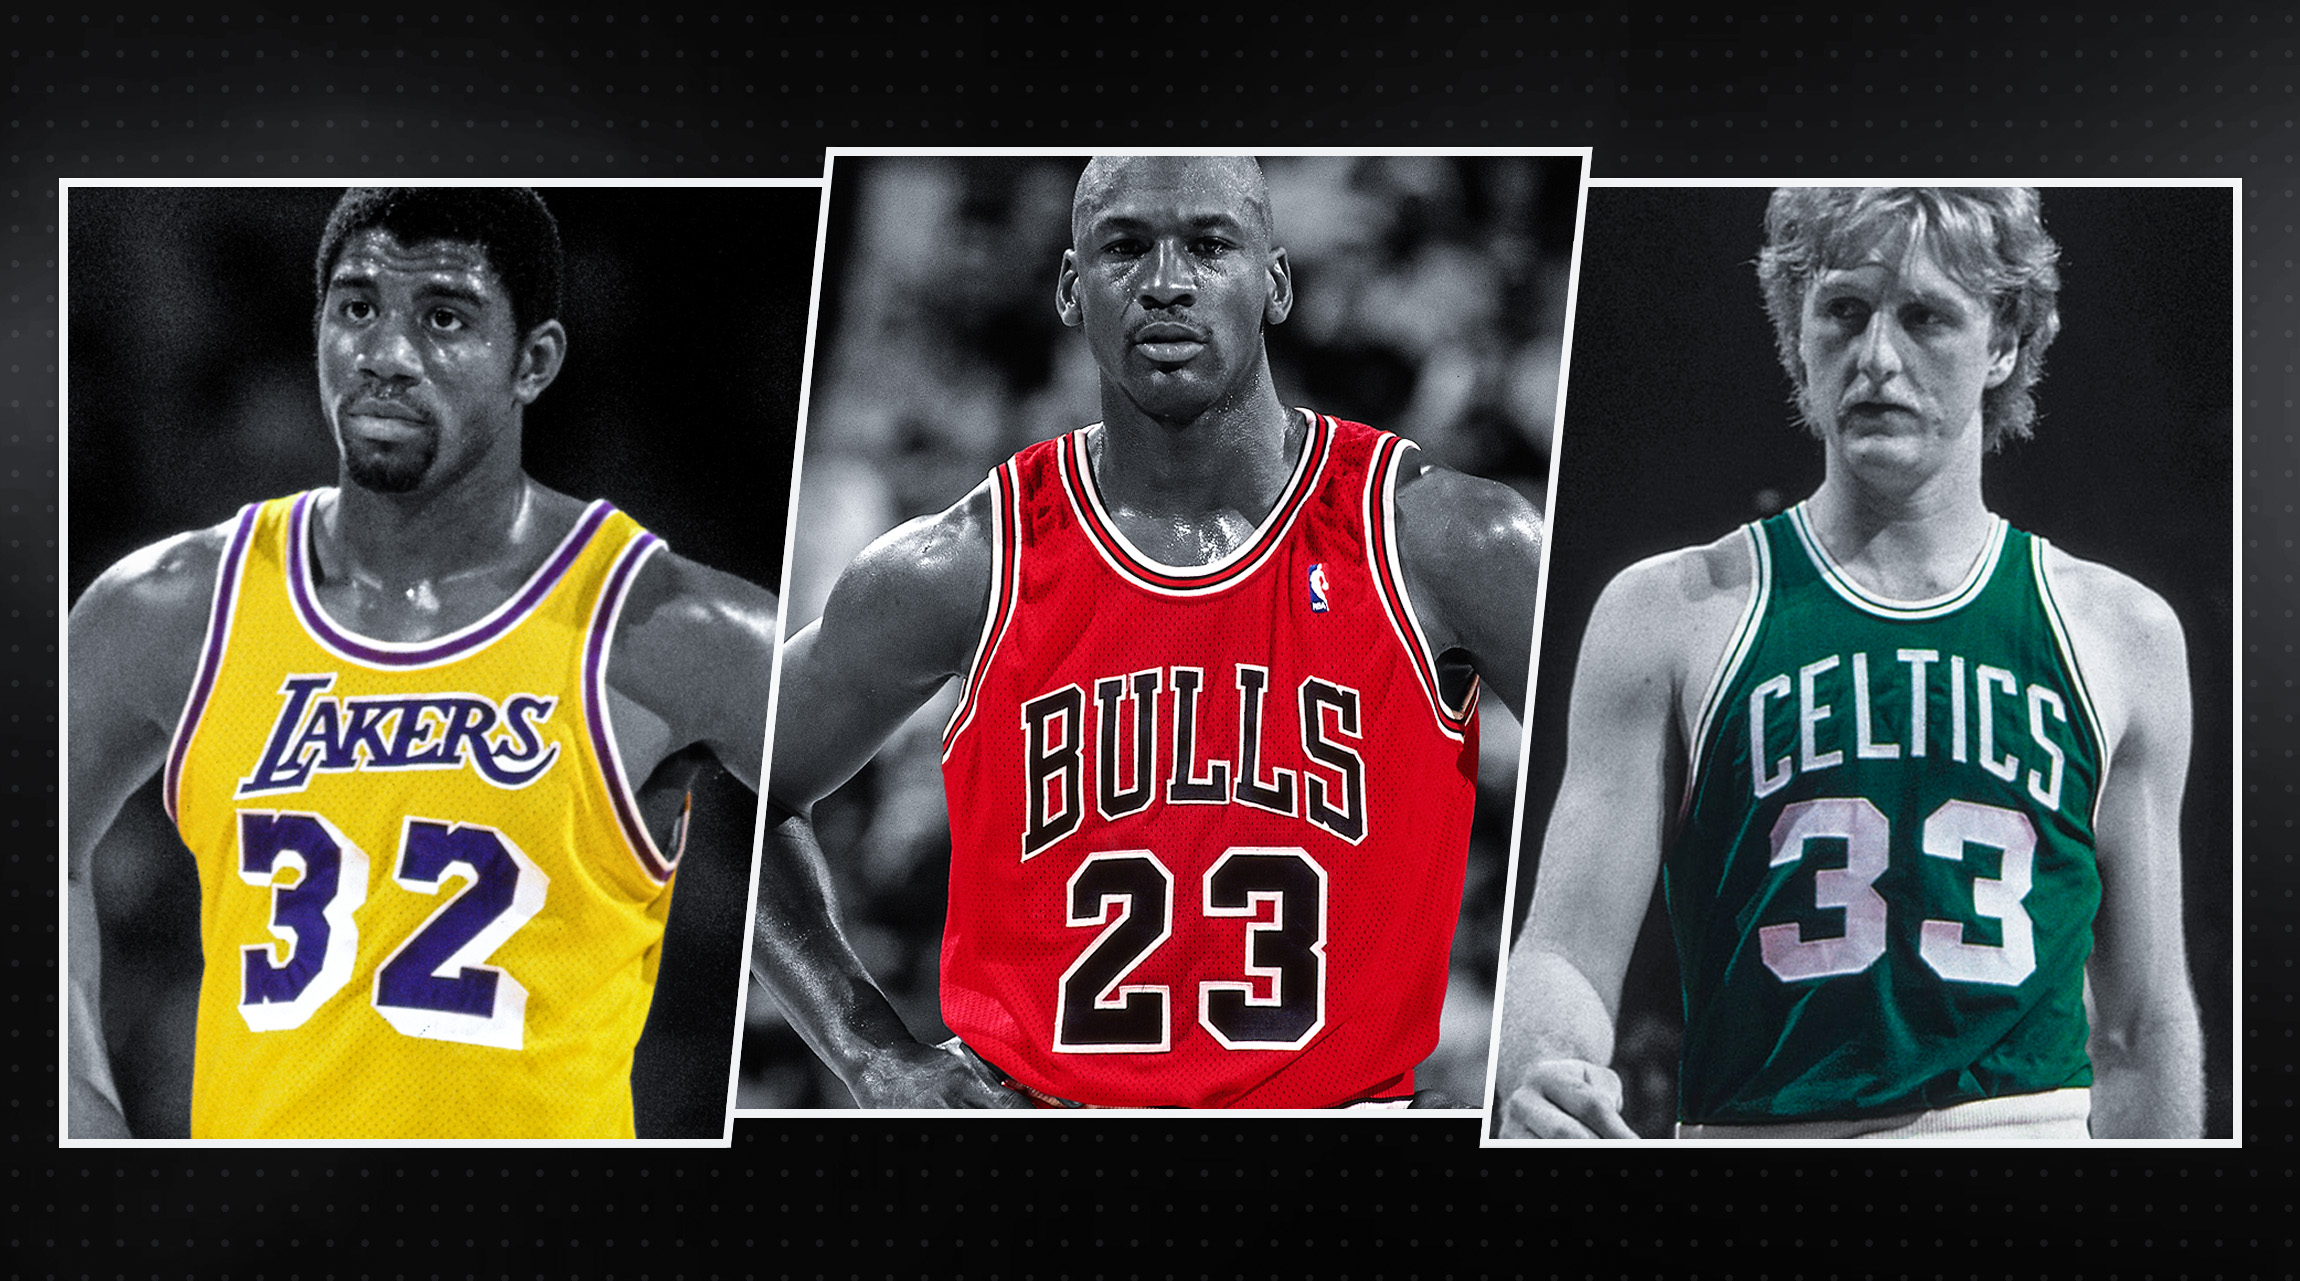 ae4114093f36 NBA jerseys  Ranking the 30 greatest in history